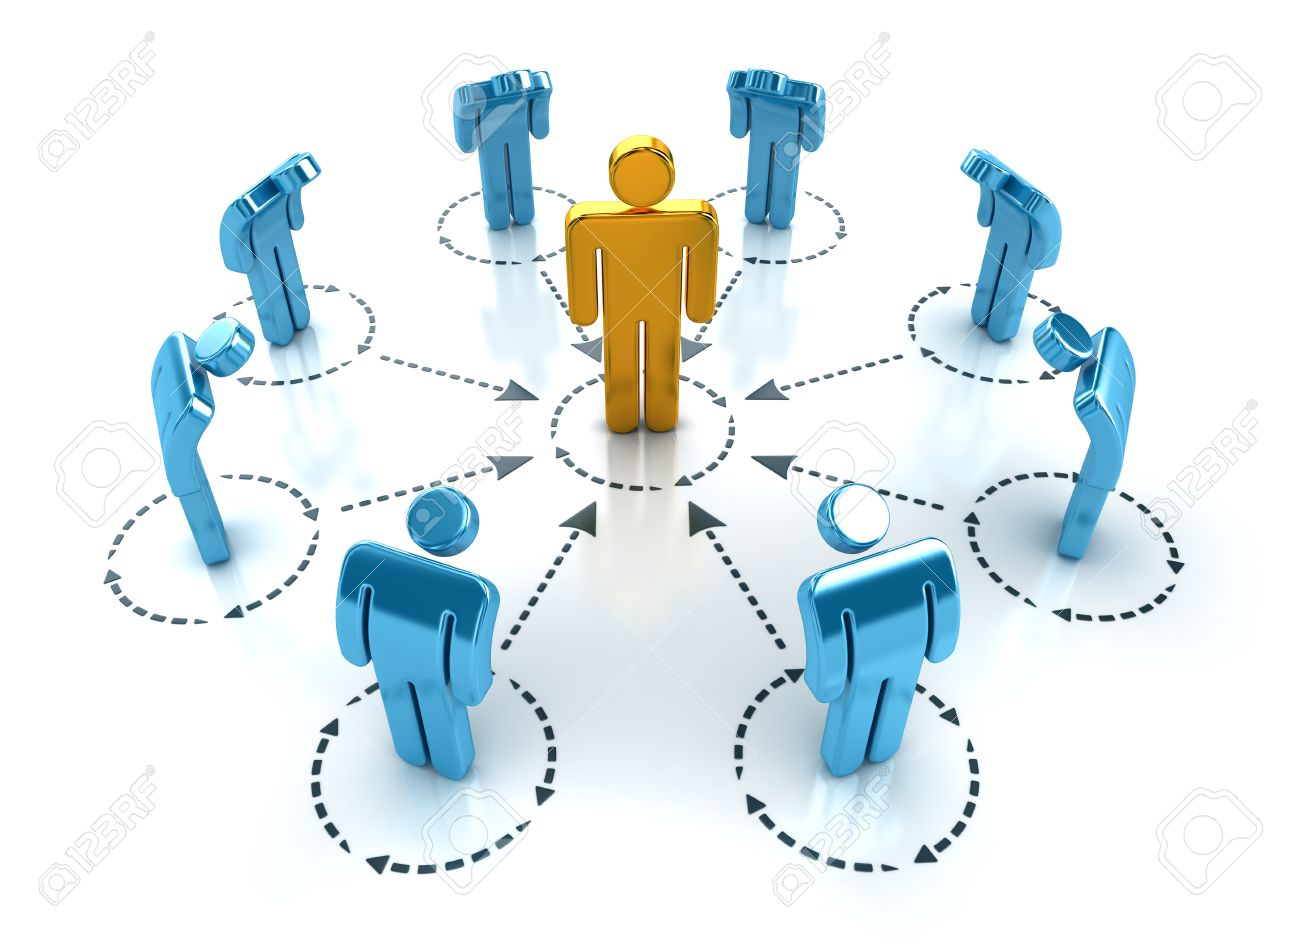 Business organization layout. Teamwork and leadership concept. Stock Photo - 6998717